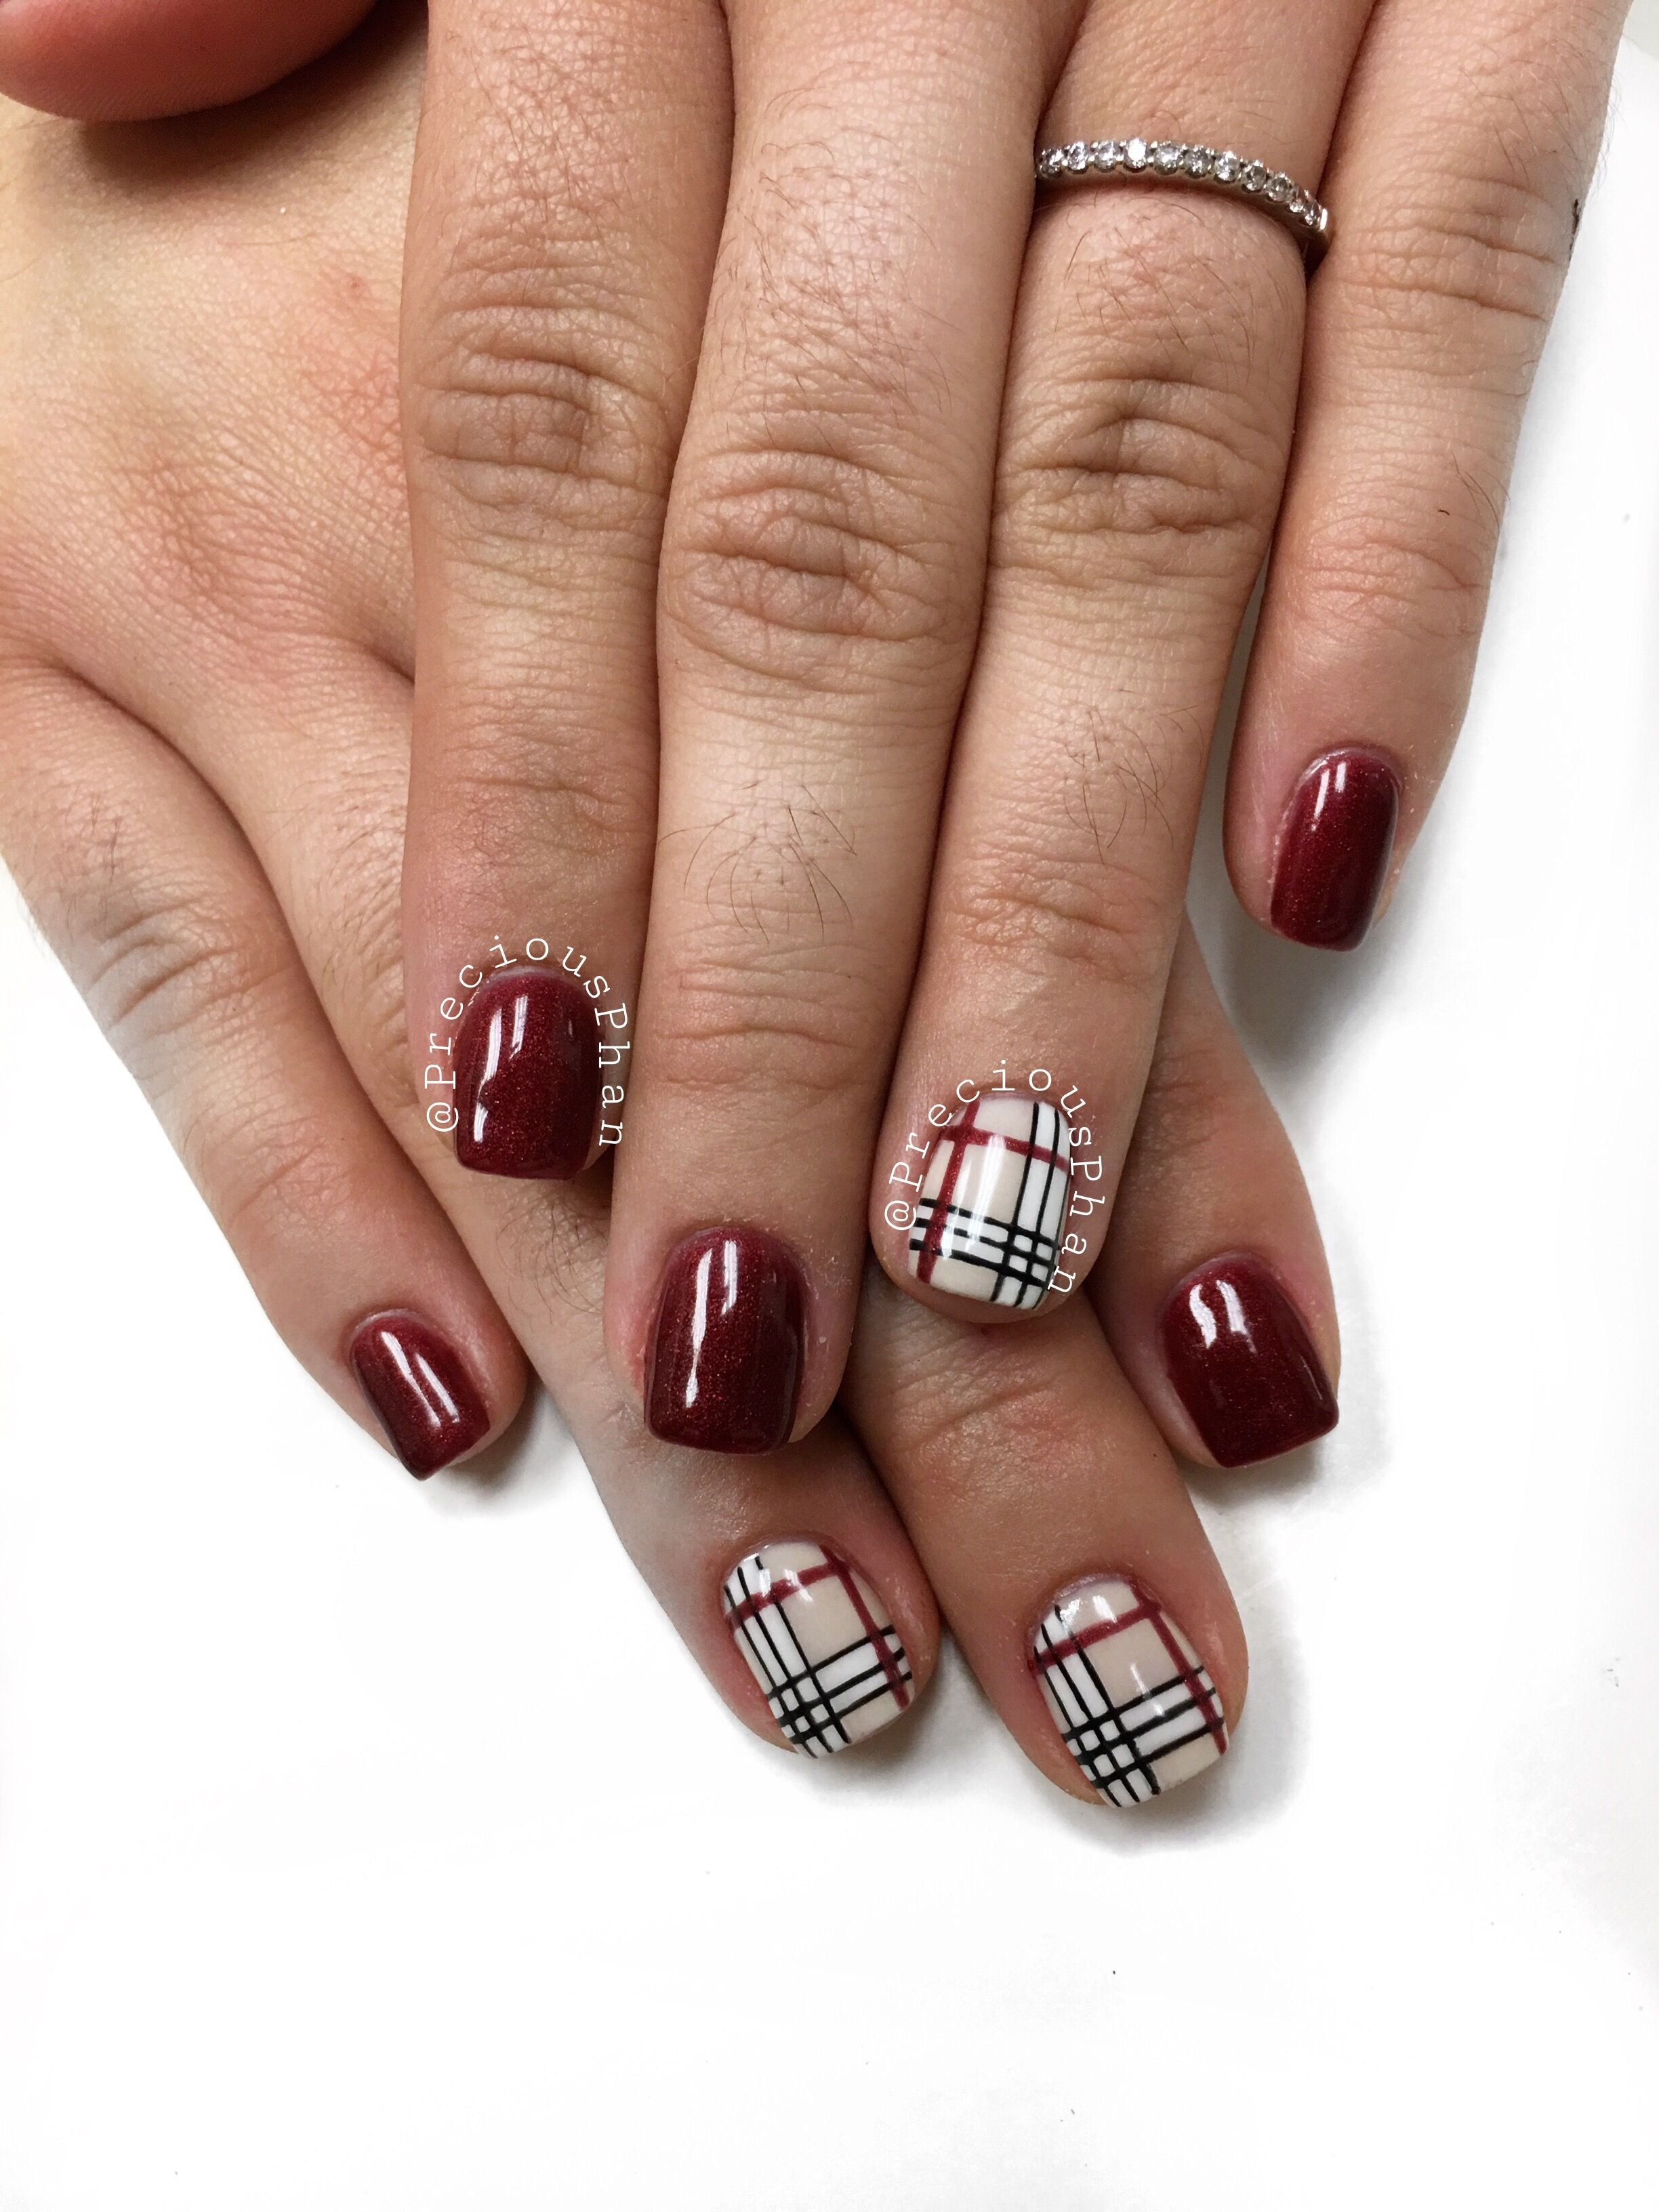 Burberry Nails. Plaid Nails. Maroon Nails. #PreciousPhan